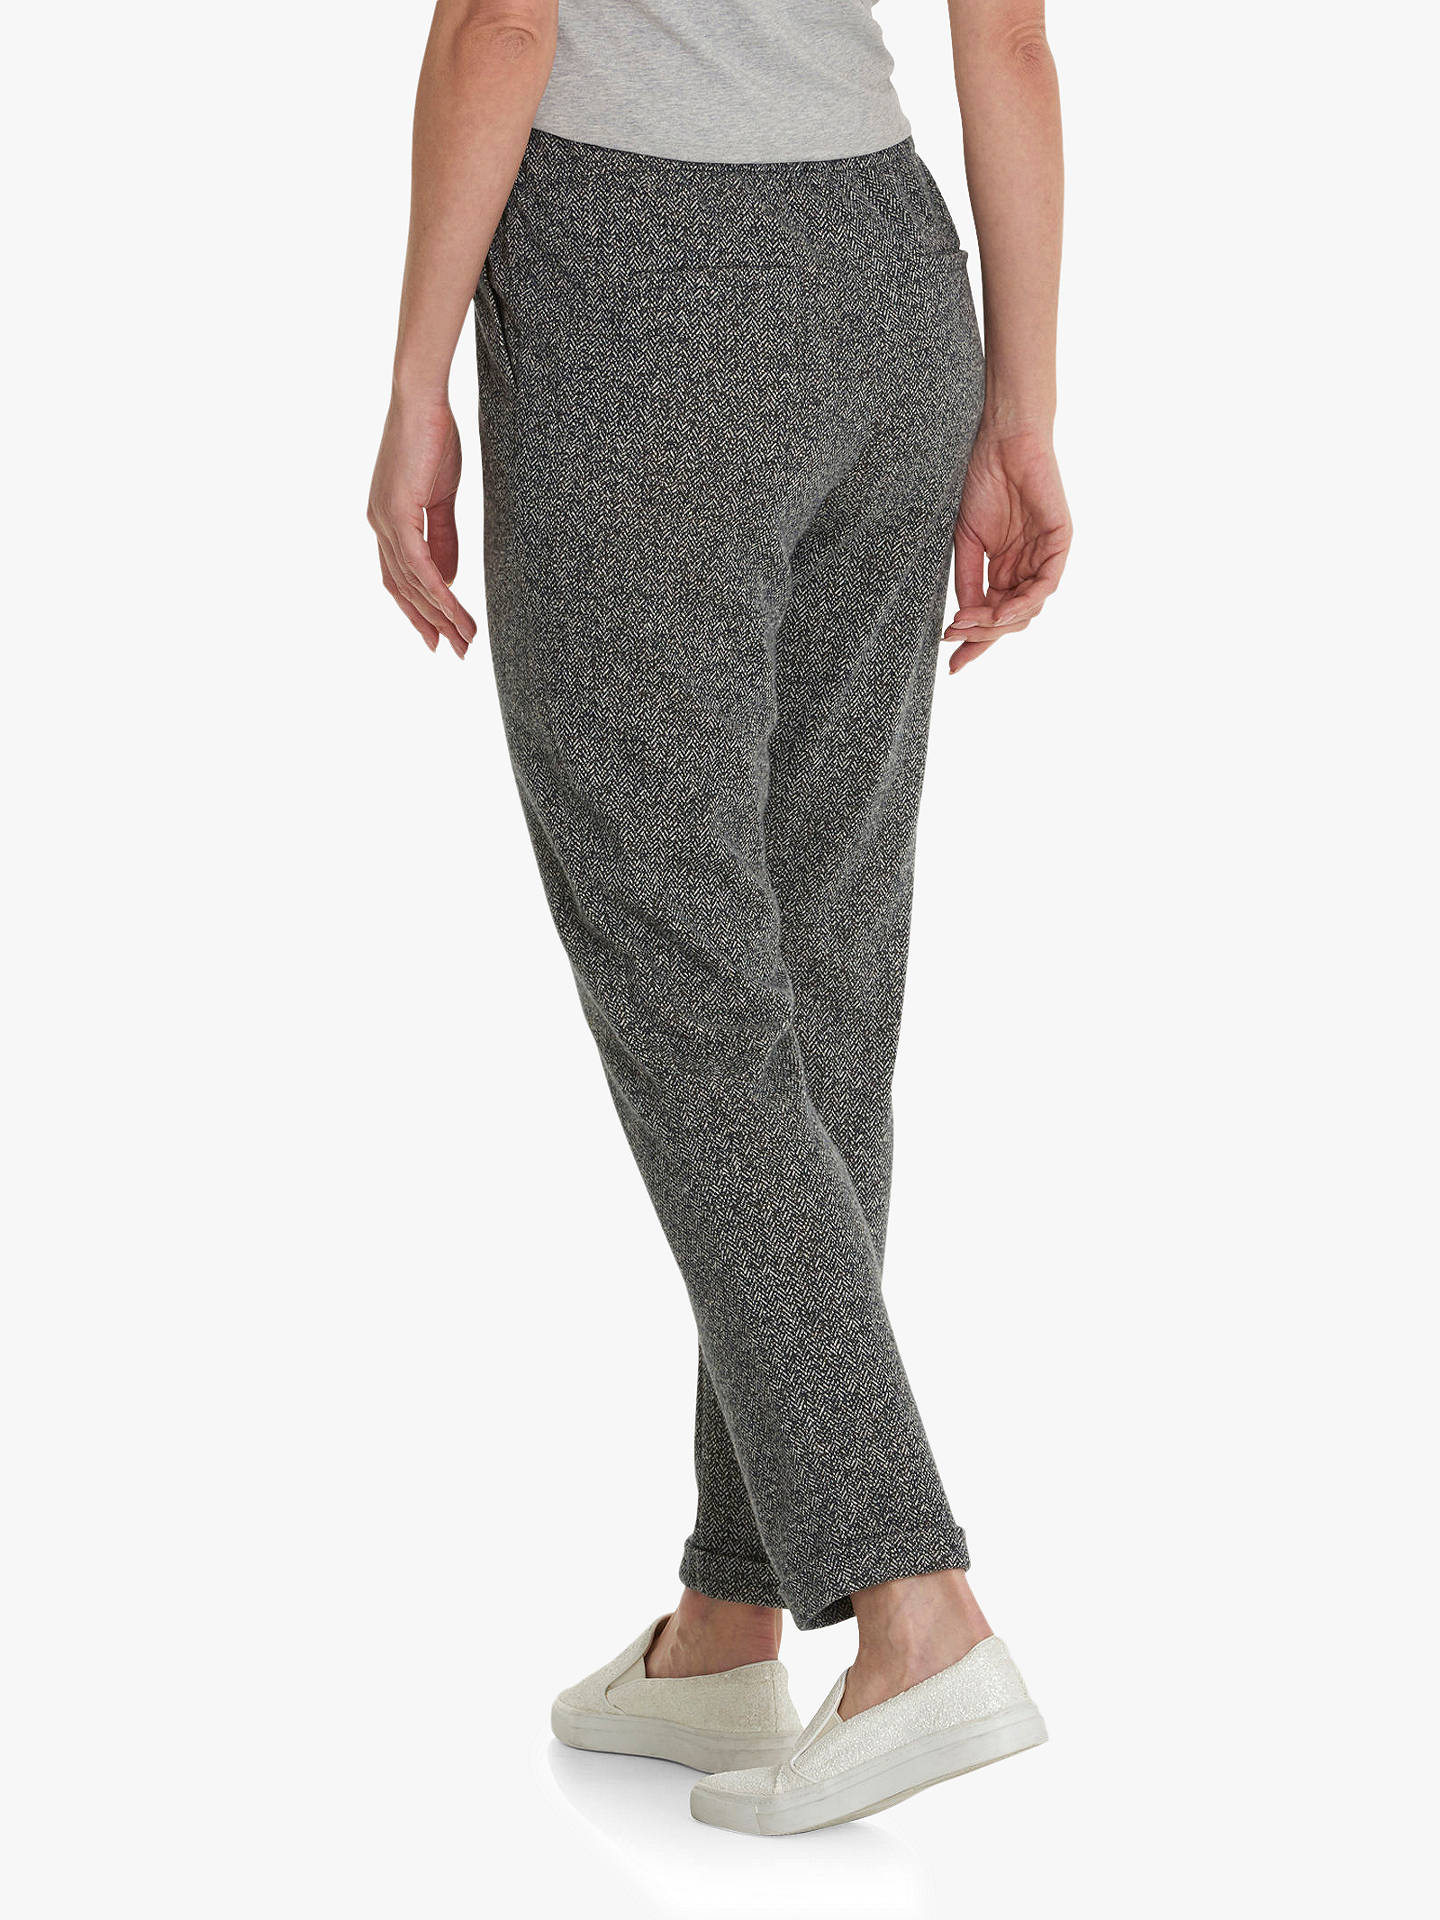 BuyBetty Barclay Sporty Tweed Trousers, Dark Blue/Cream, 14 Online at johnlewis.com